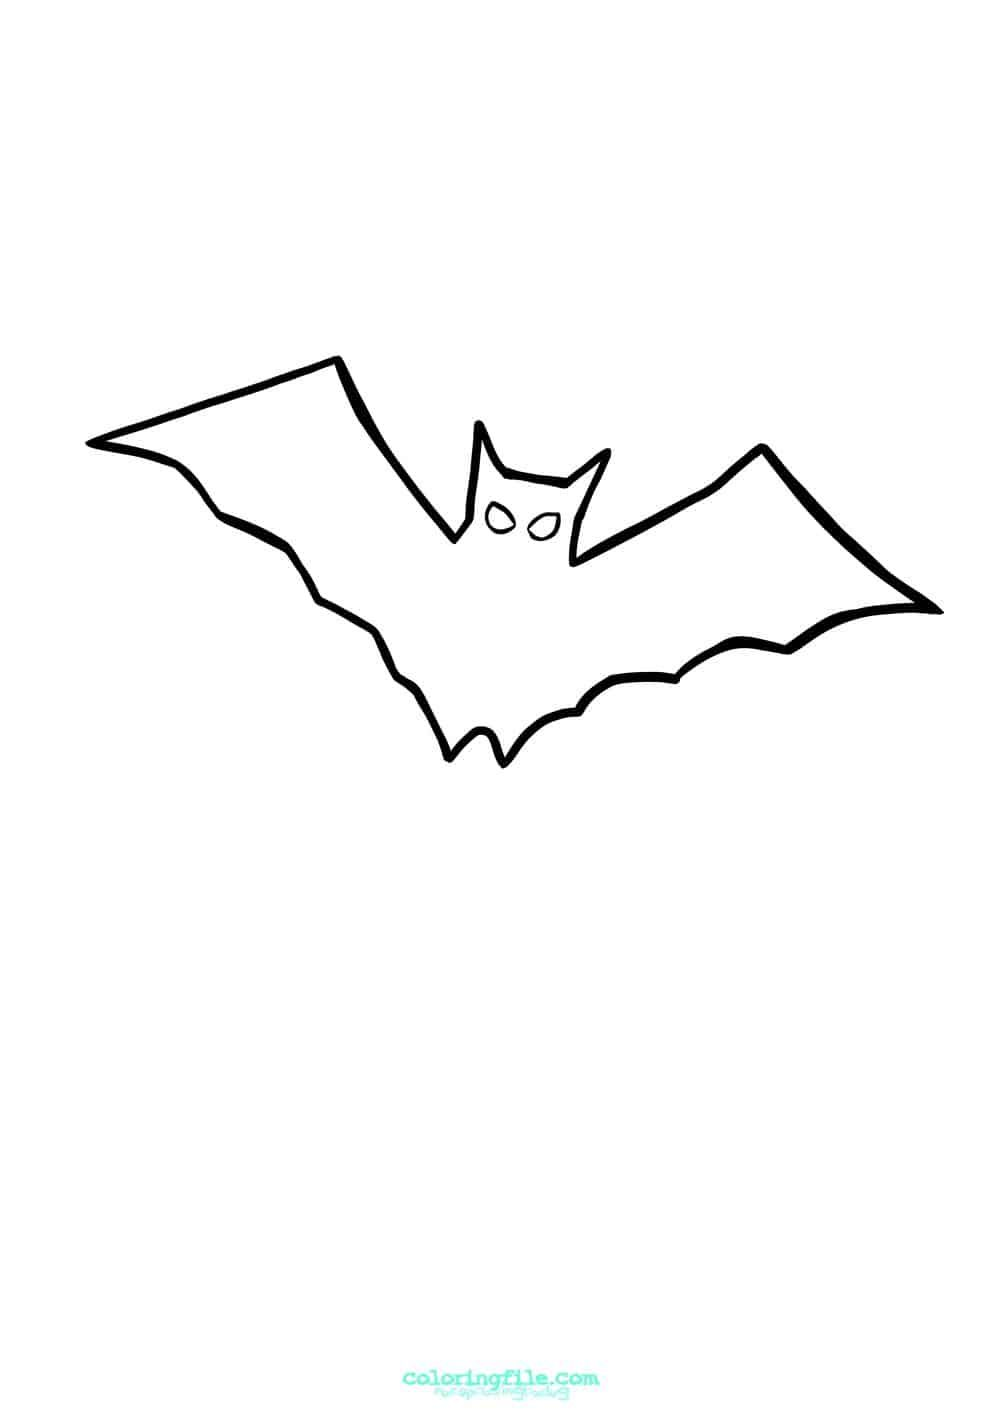 Easy To Draw Halloween Bat Coloring Pages Bat Coloring Pages